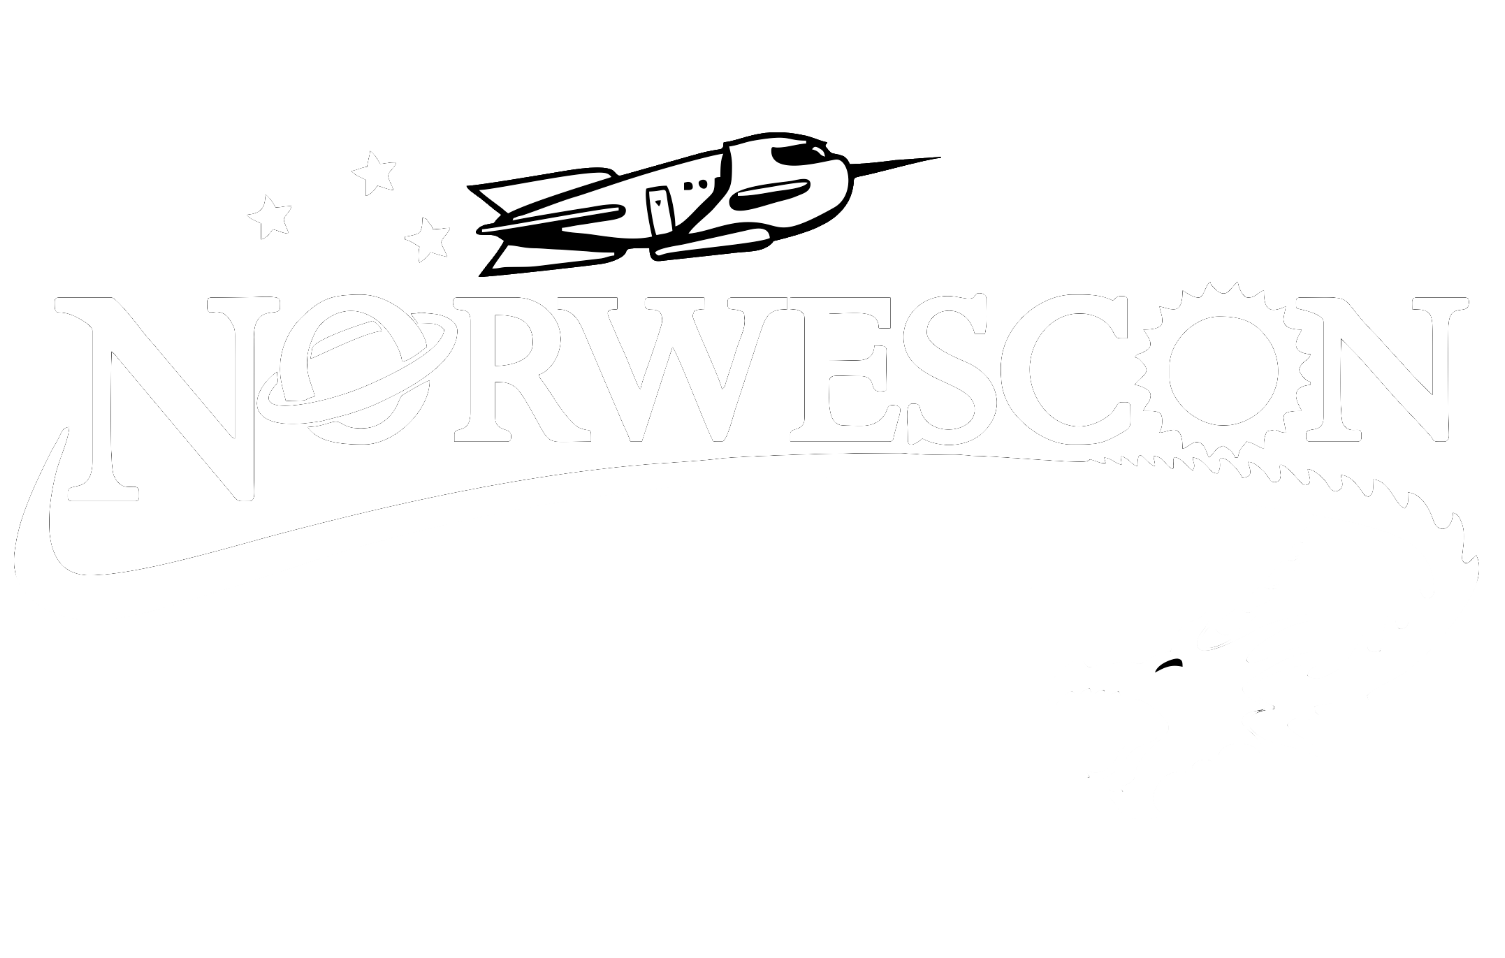 Welcome to Norwescon 43: The Longest Night